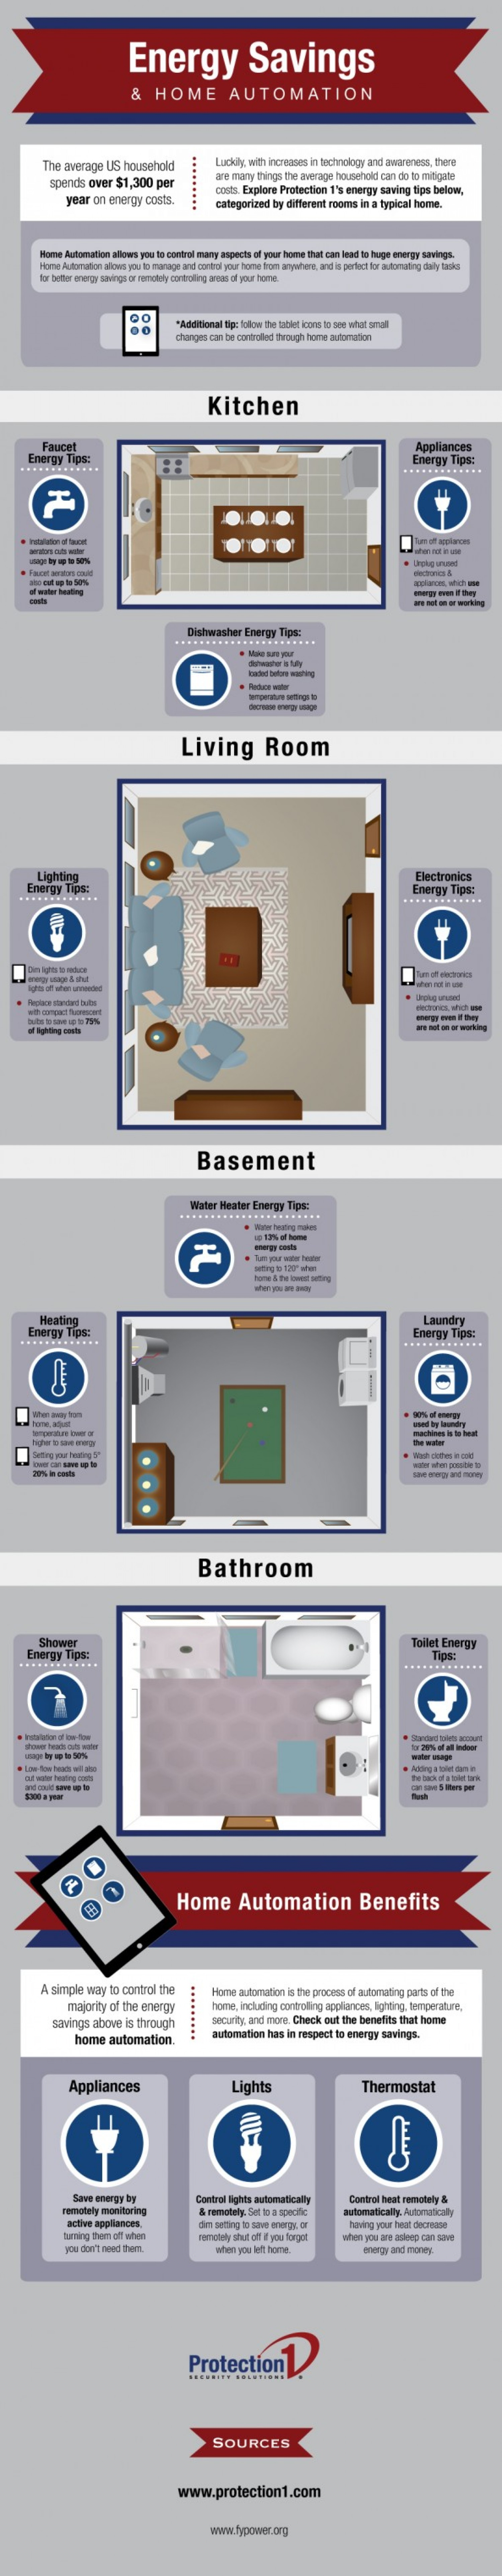 Home Automation Energy Savings Tips Infographic Public